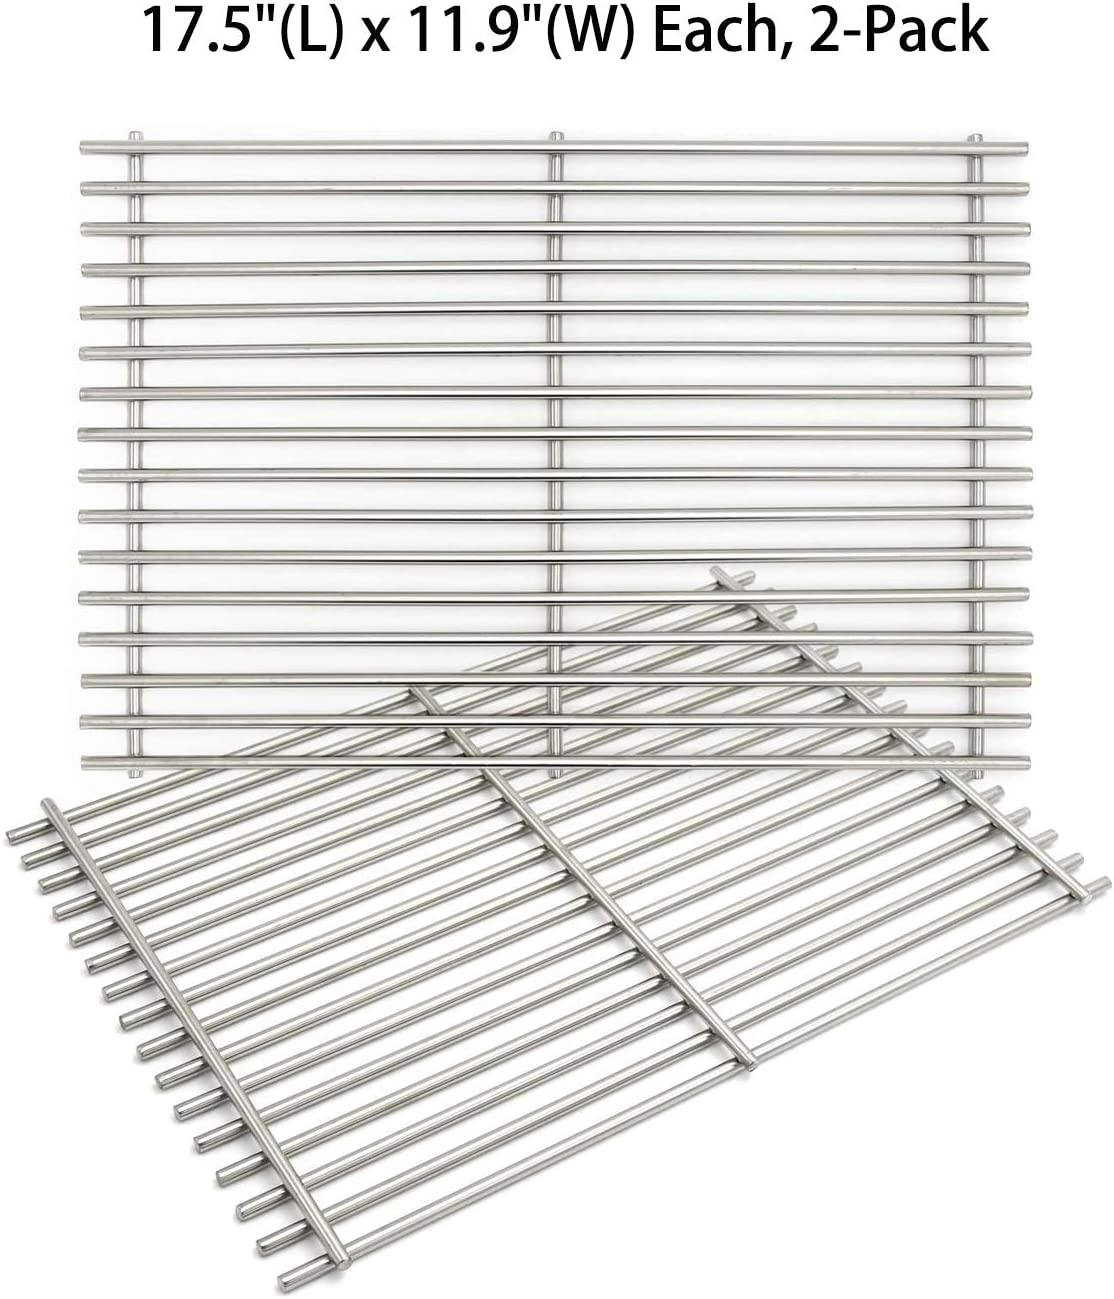 """Hongso 7639 7638 17.5"""" SUS 304 Gas Grill Cooking Grates Replacement for Weber Spirit 300 Series, Spirit 700, Genesis Silver B/C, Genesis Gold B/C, Genesis Platinum B/C, Genesis 1000-3500, SCG638"""